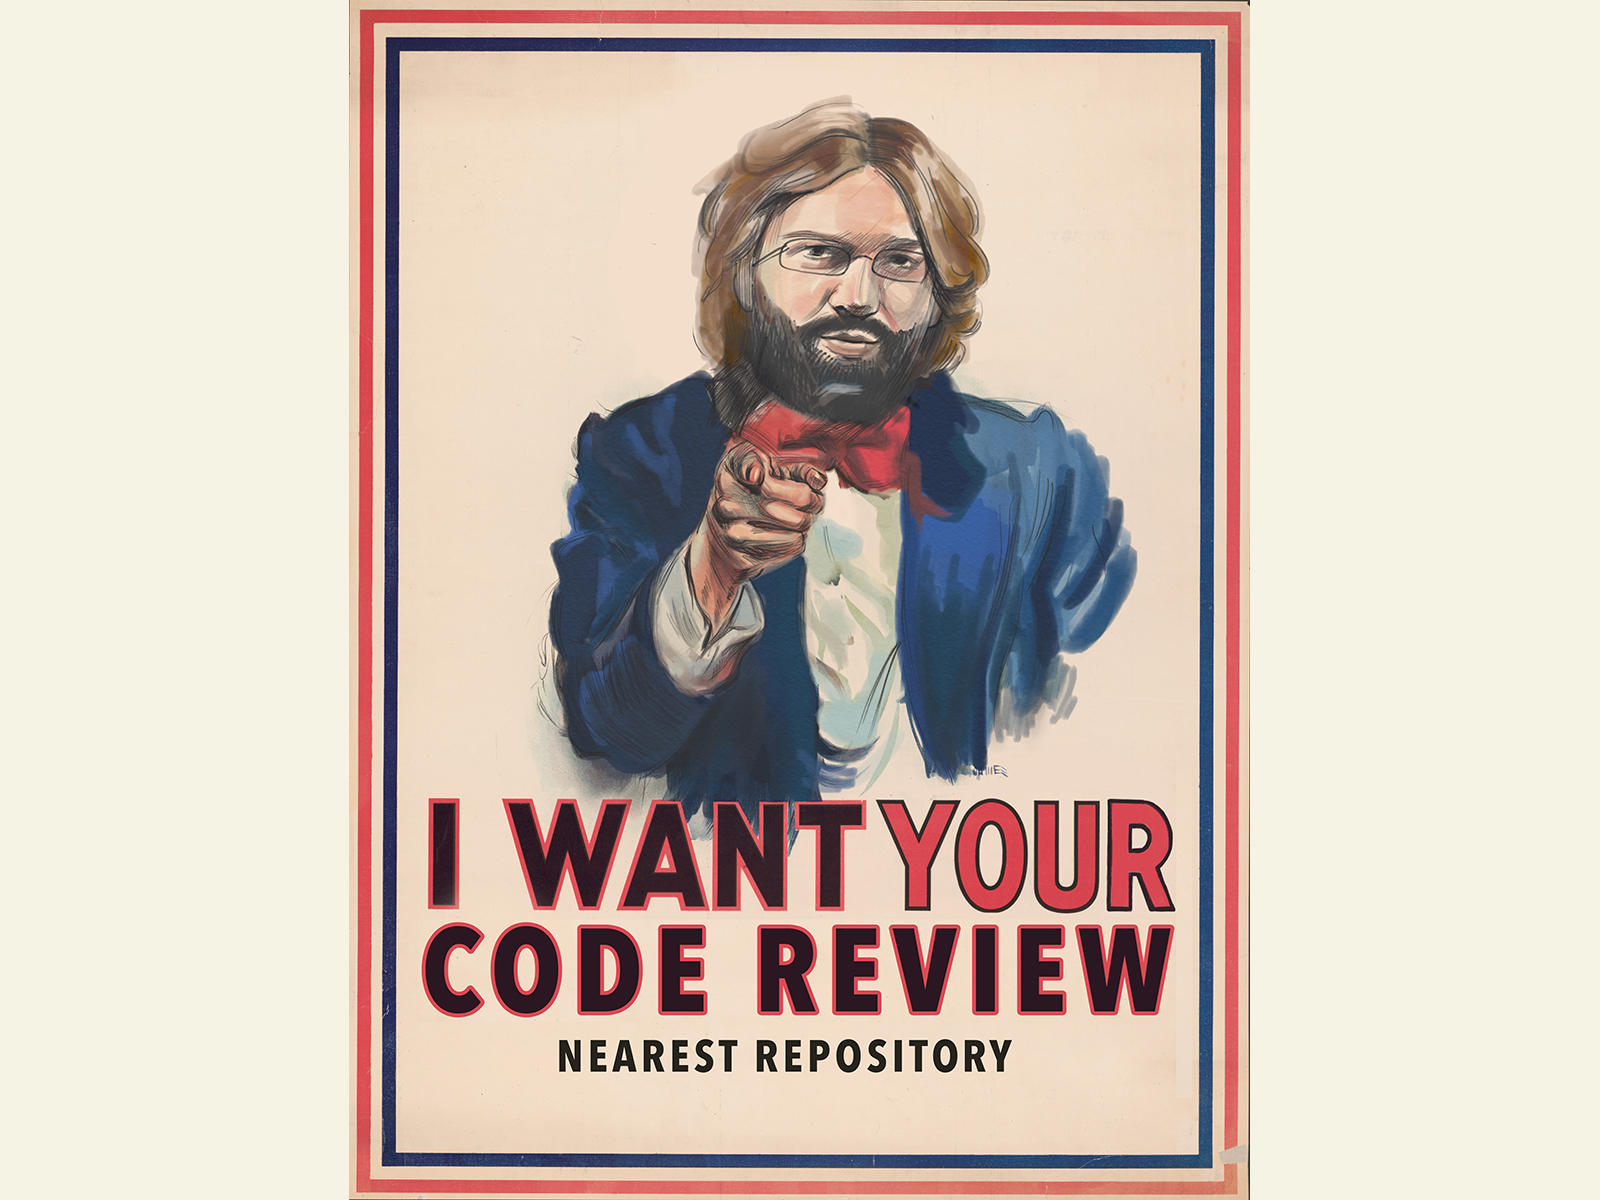 Rules for My Code to Be Reviewed